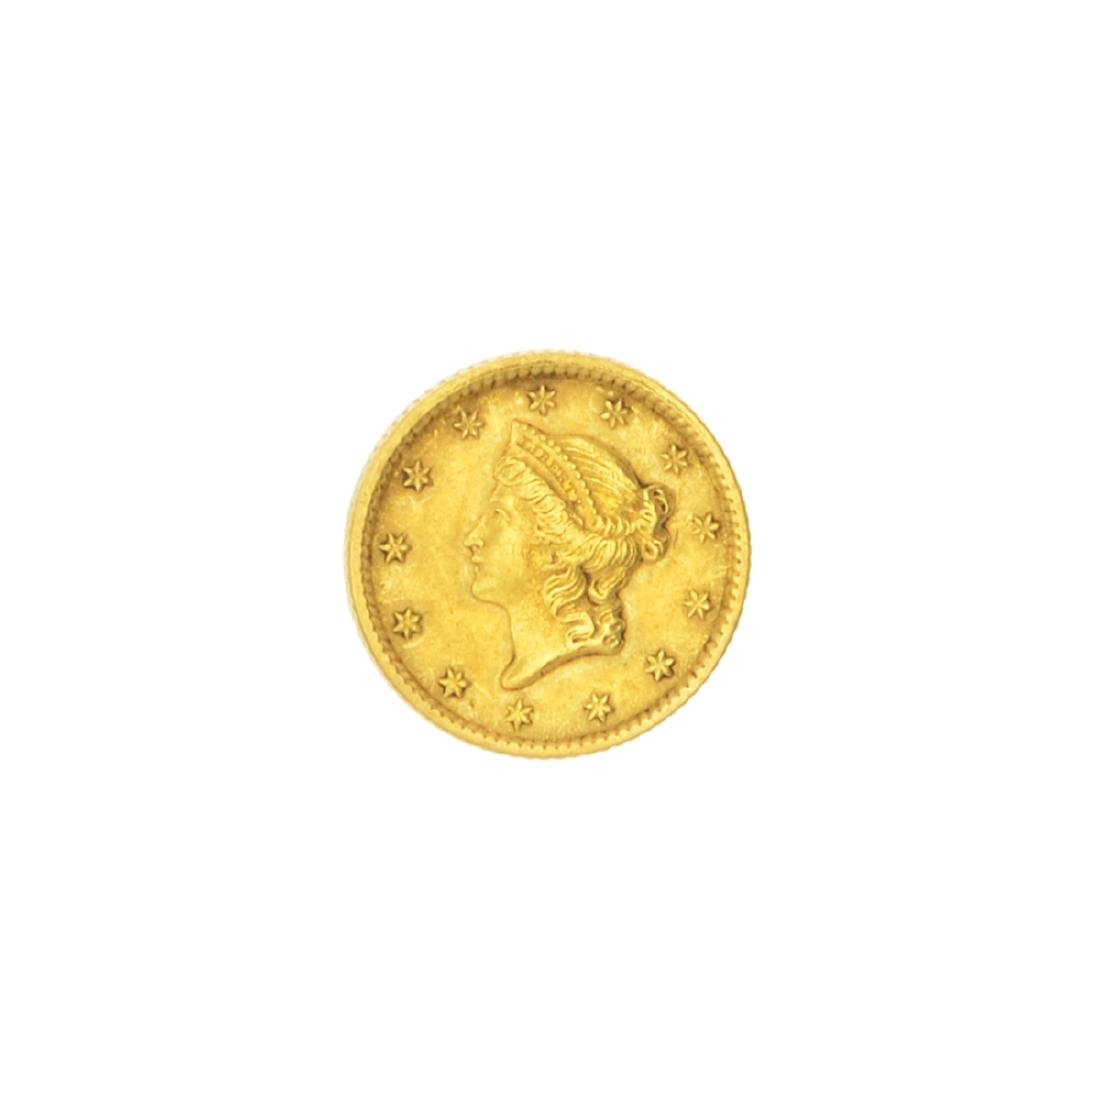 Very Rare 1853 $1 U.S. Liberty Head Gold Coin Great